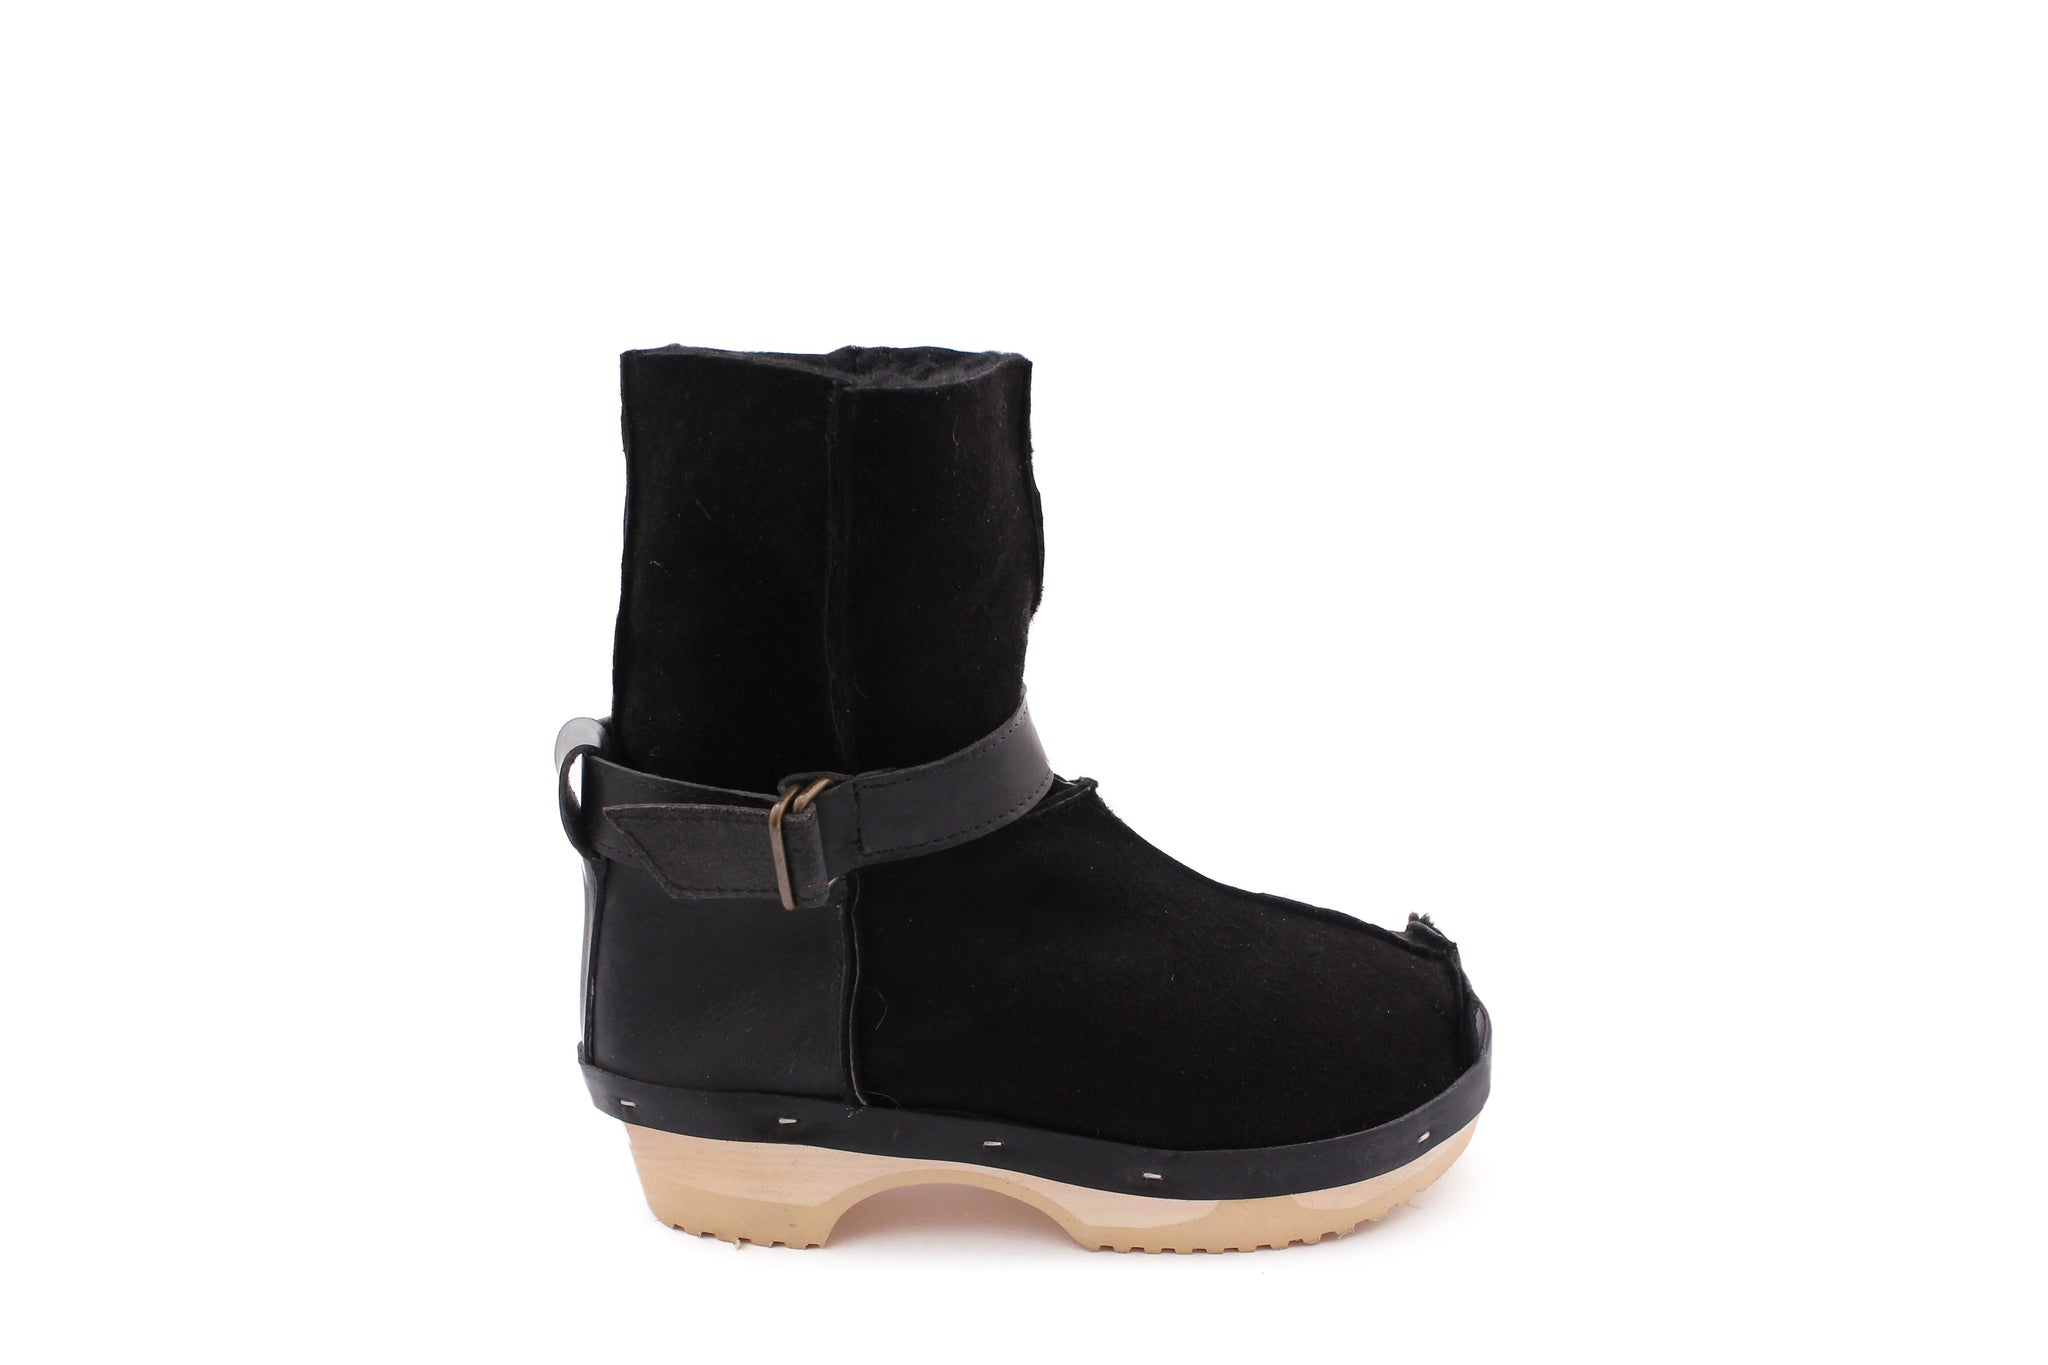 OLGA BOOTS black strap natural sole